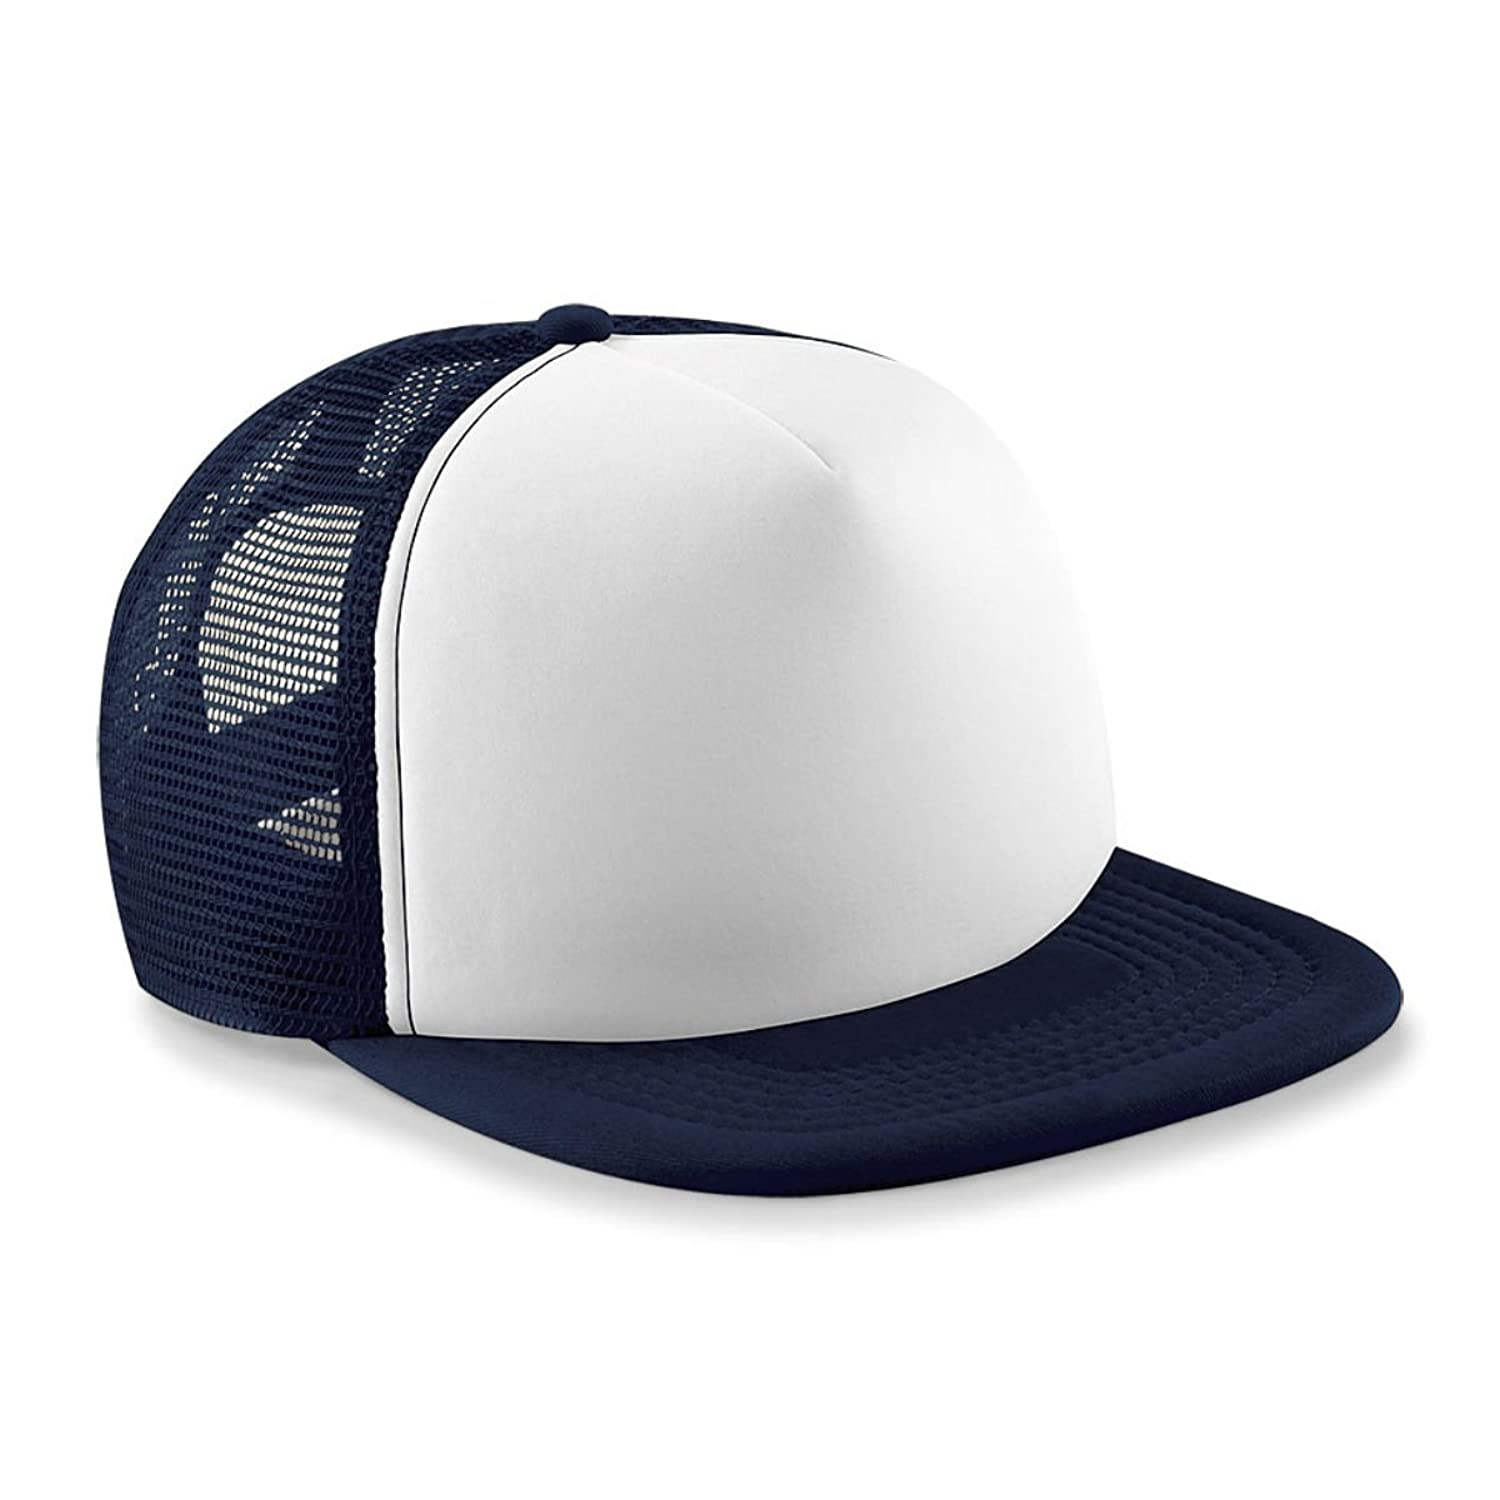 Vintage Snap Back Trucker Cap Navy/White